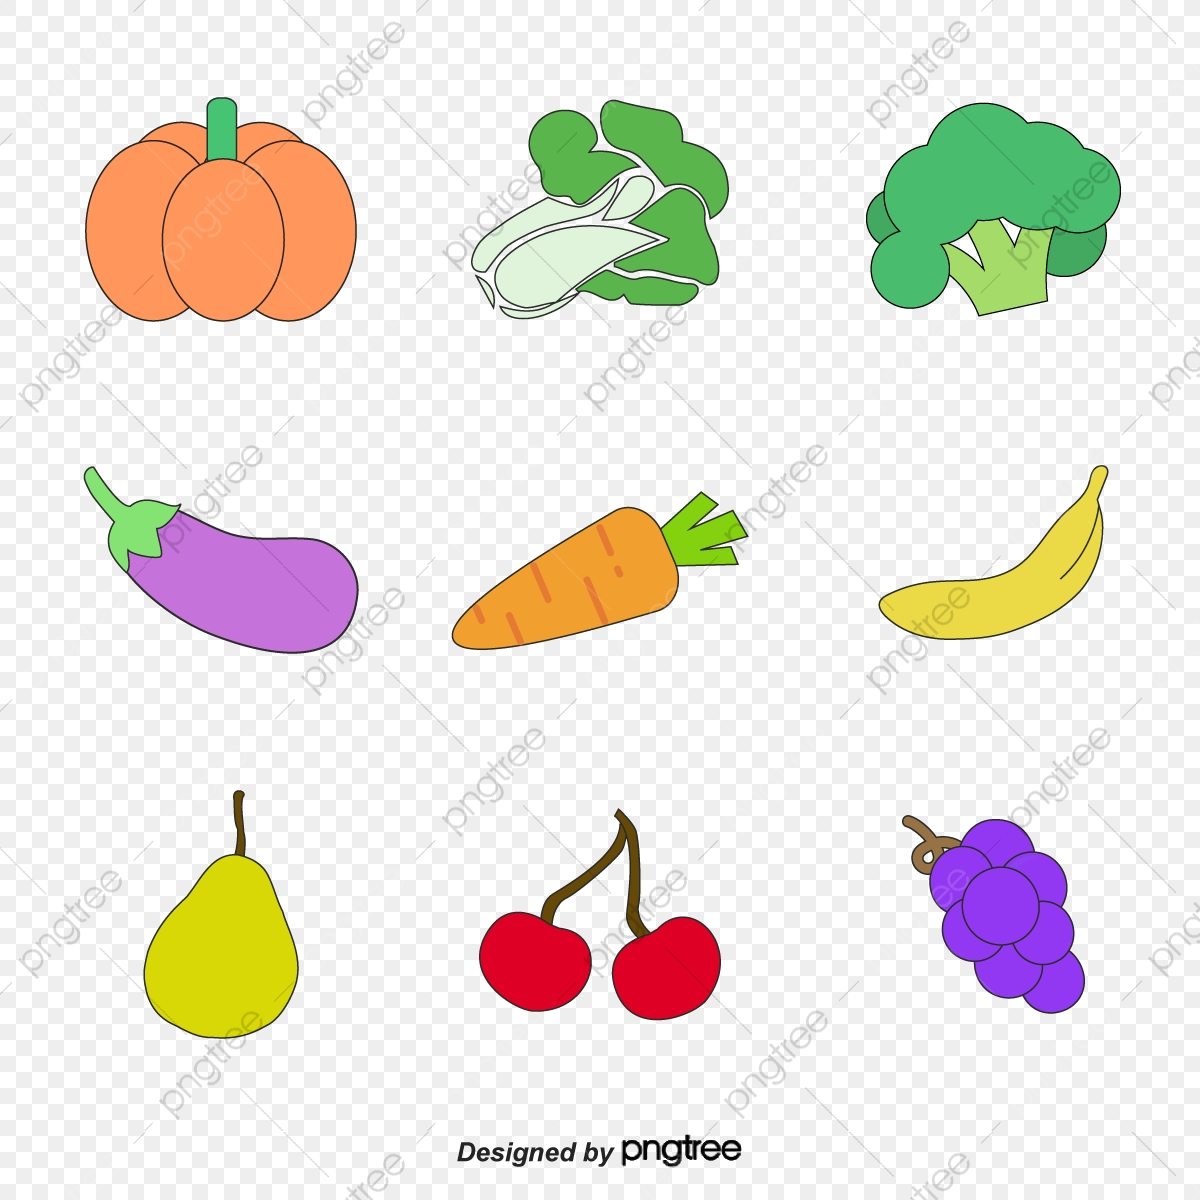 Copyright Free Images Of Fruit And Vegetables